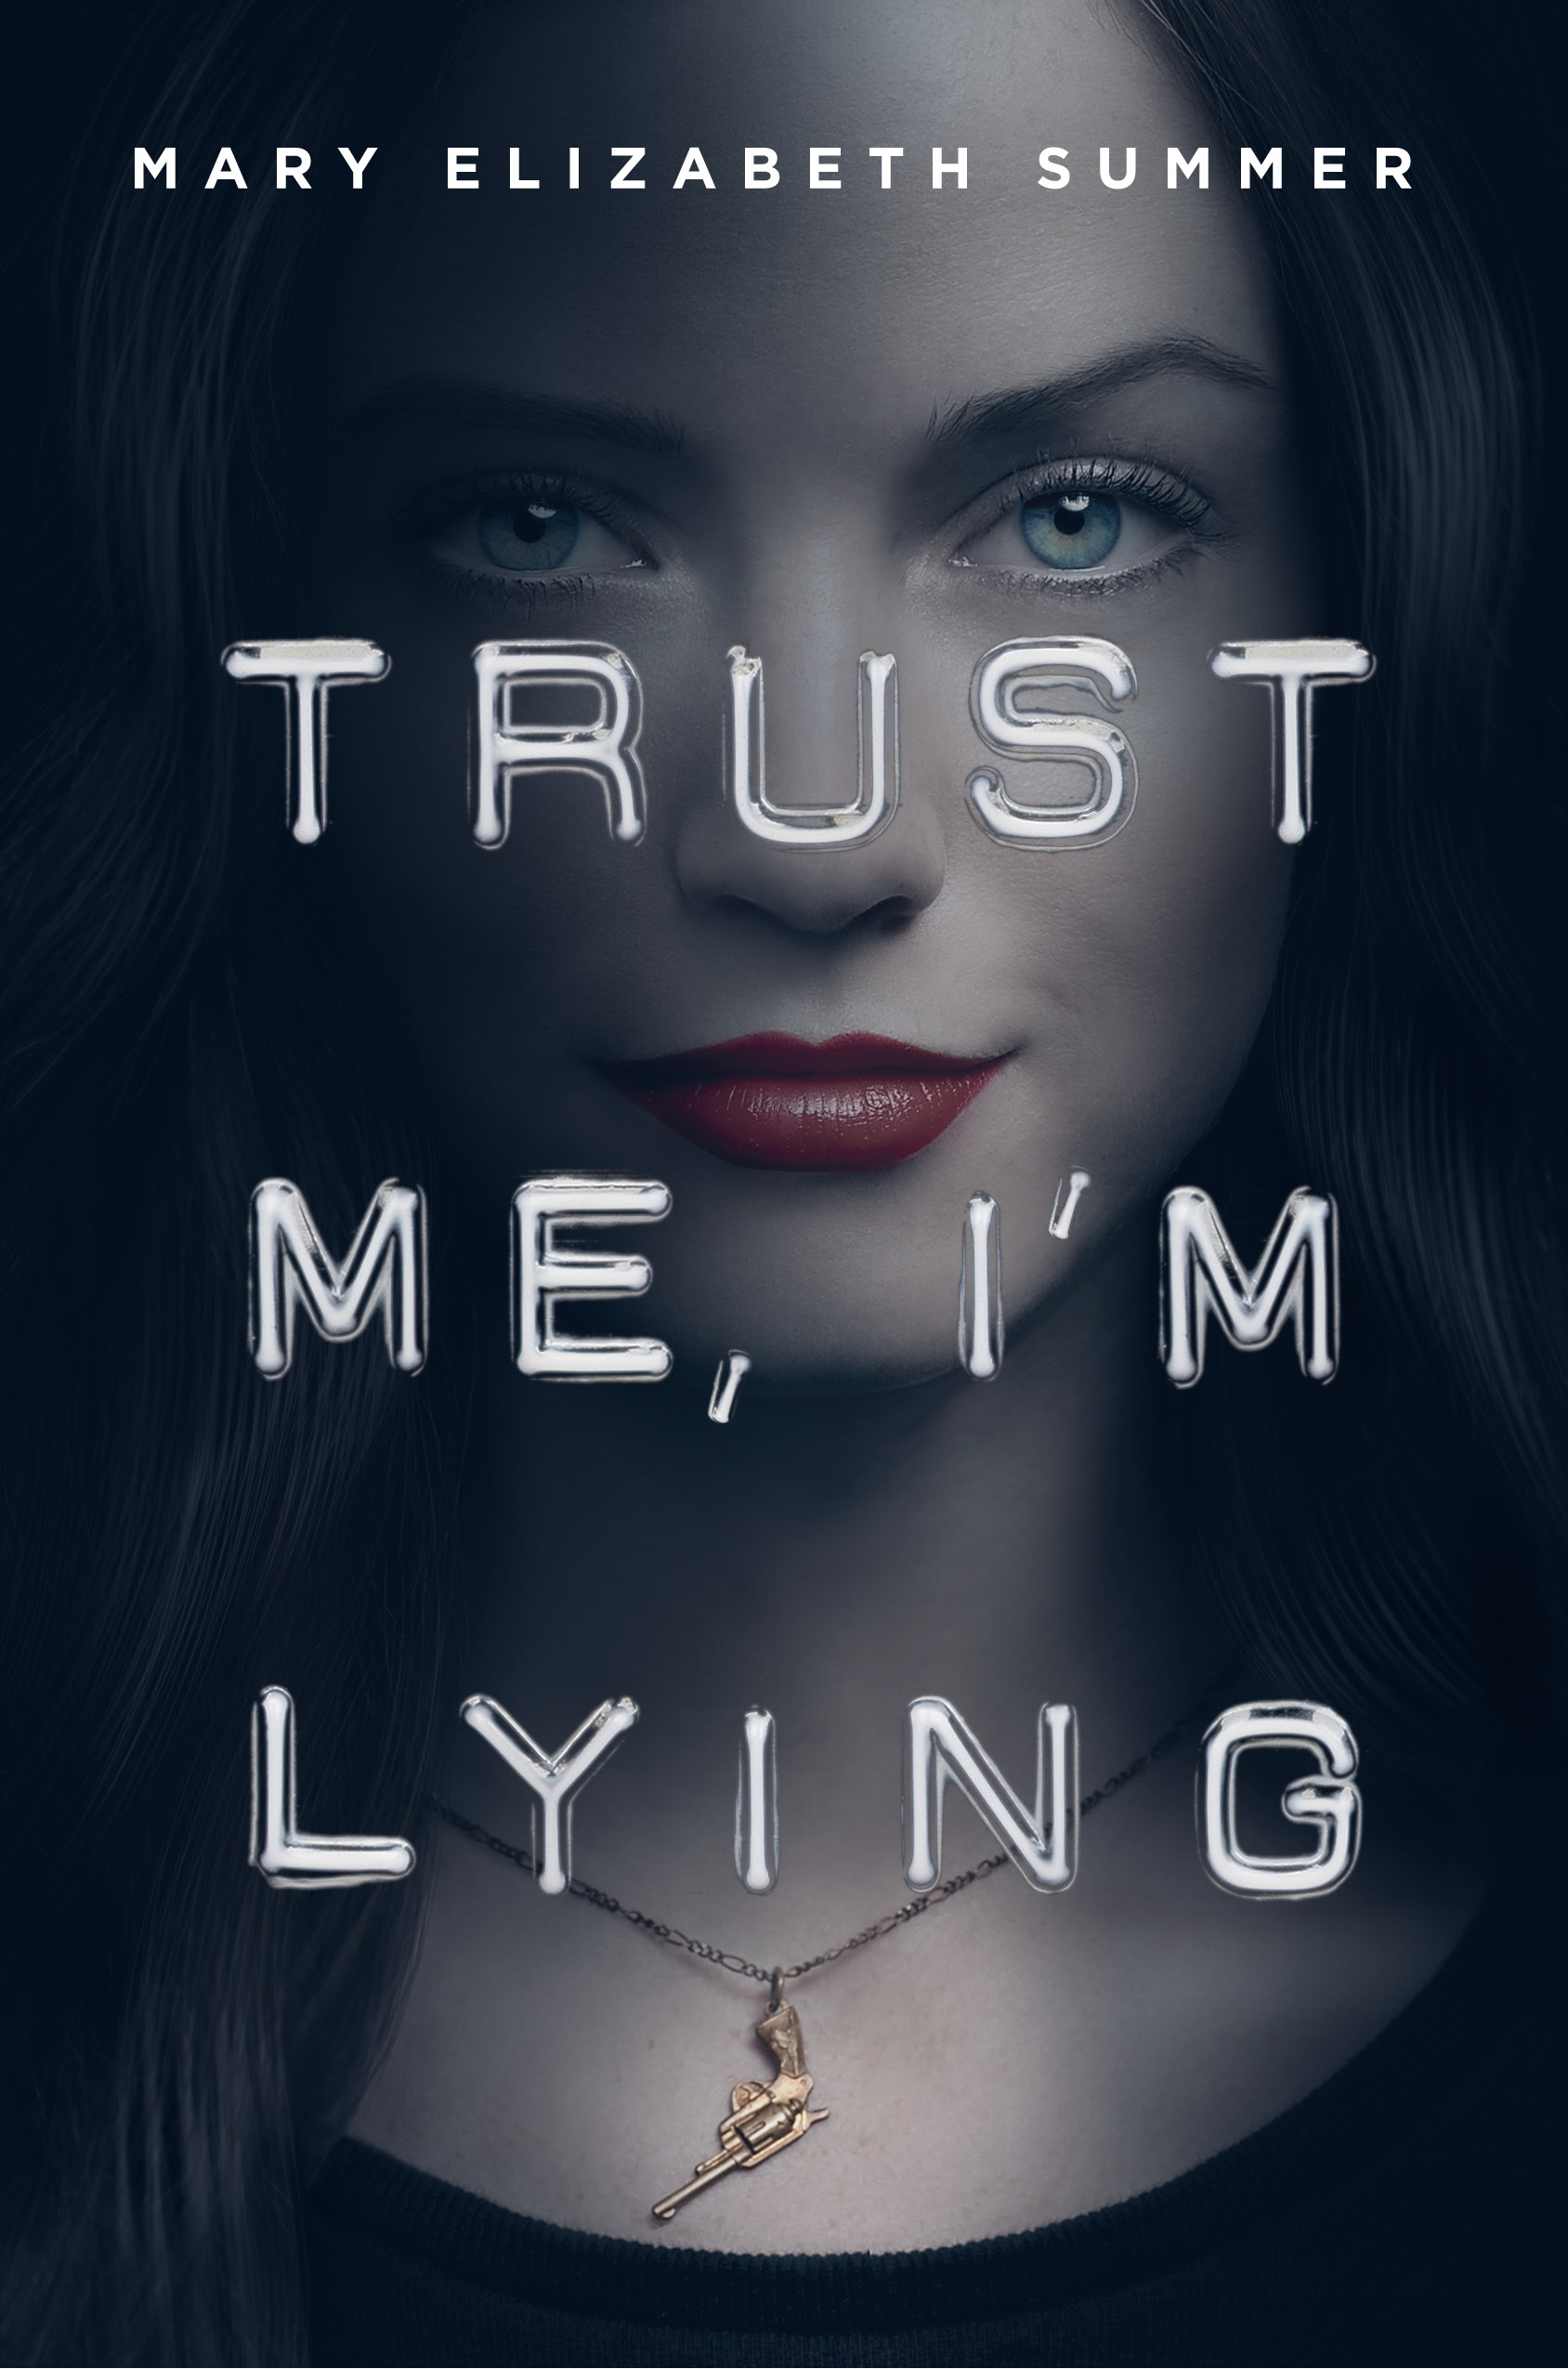 Image result for trust me i'm lying mary elizabeth summer